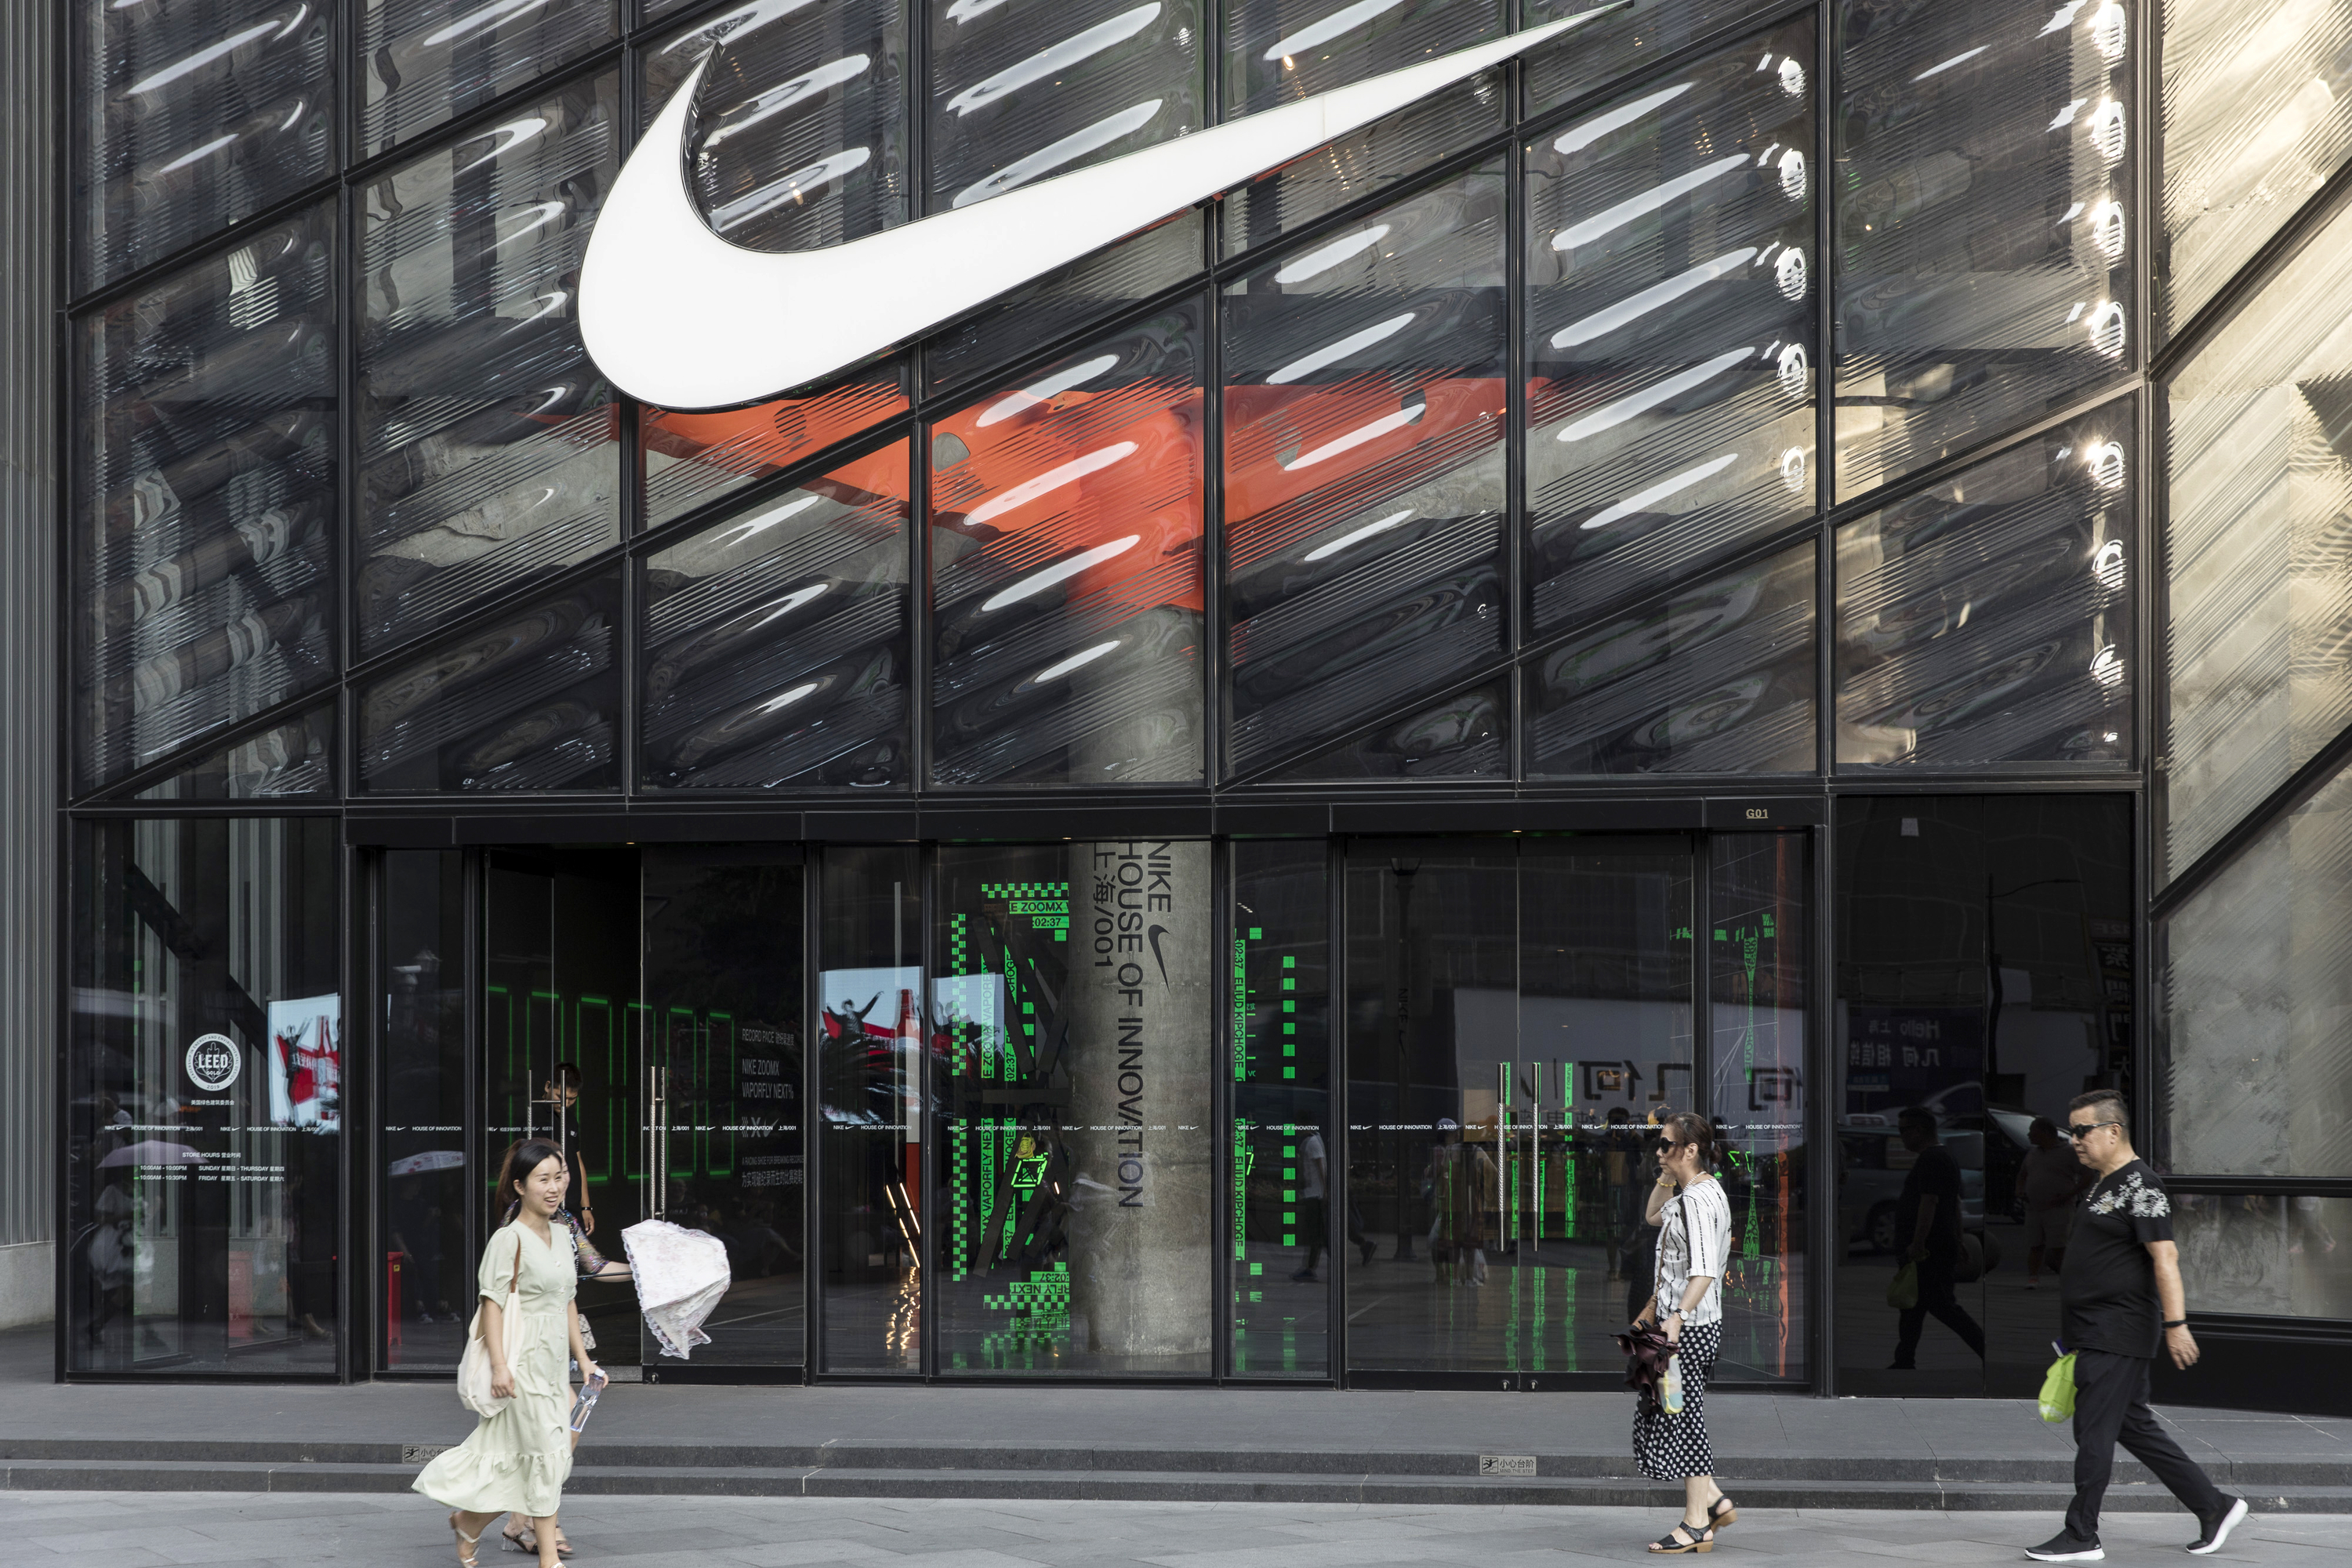 News about Nike, Apple, Google, Publicis Groupe: Friday Wake-Up Call